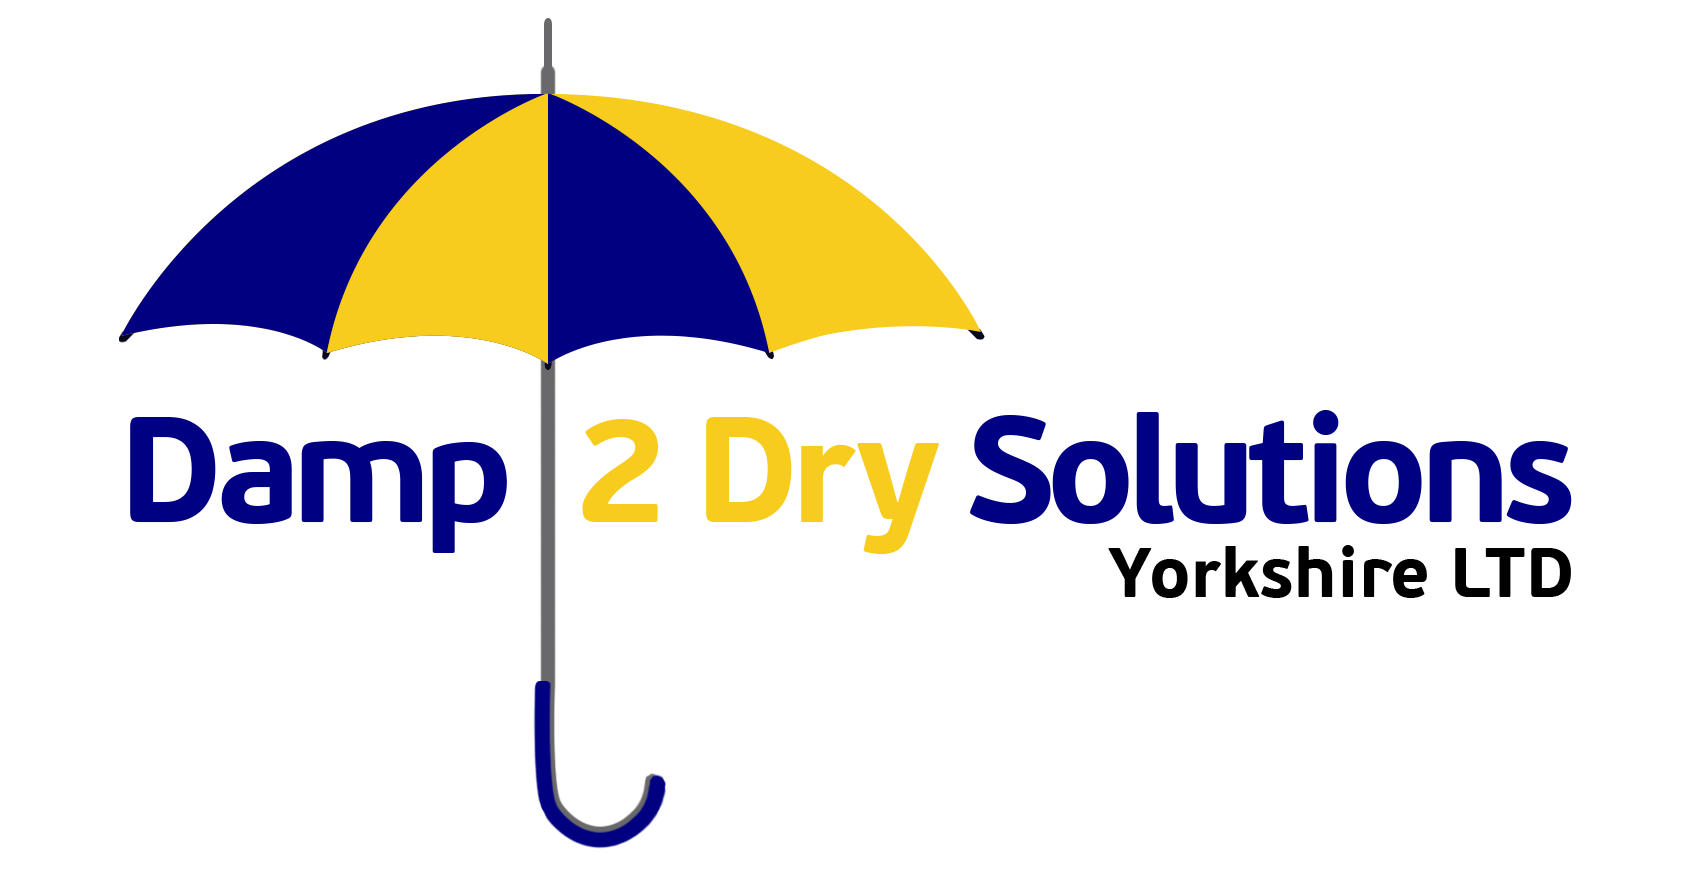 Damp2dry solutions